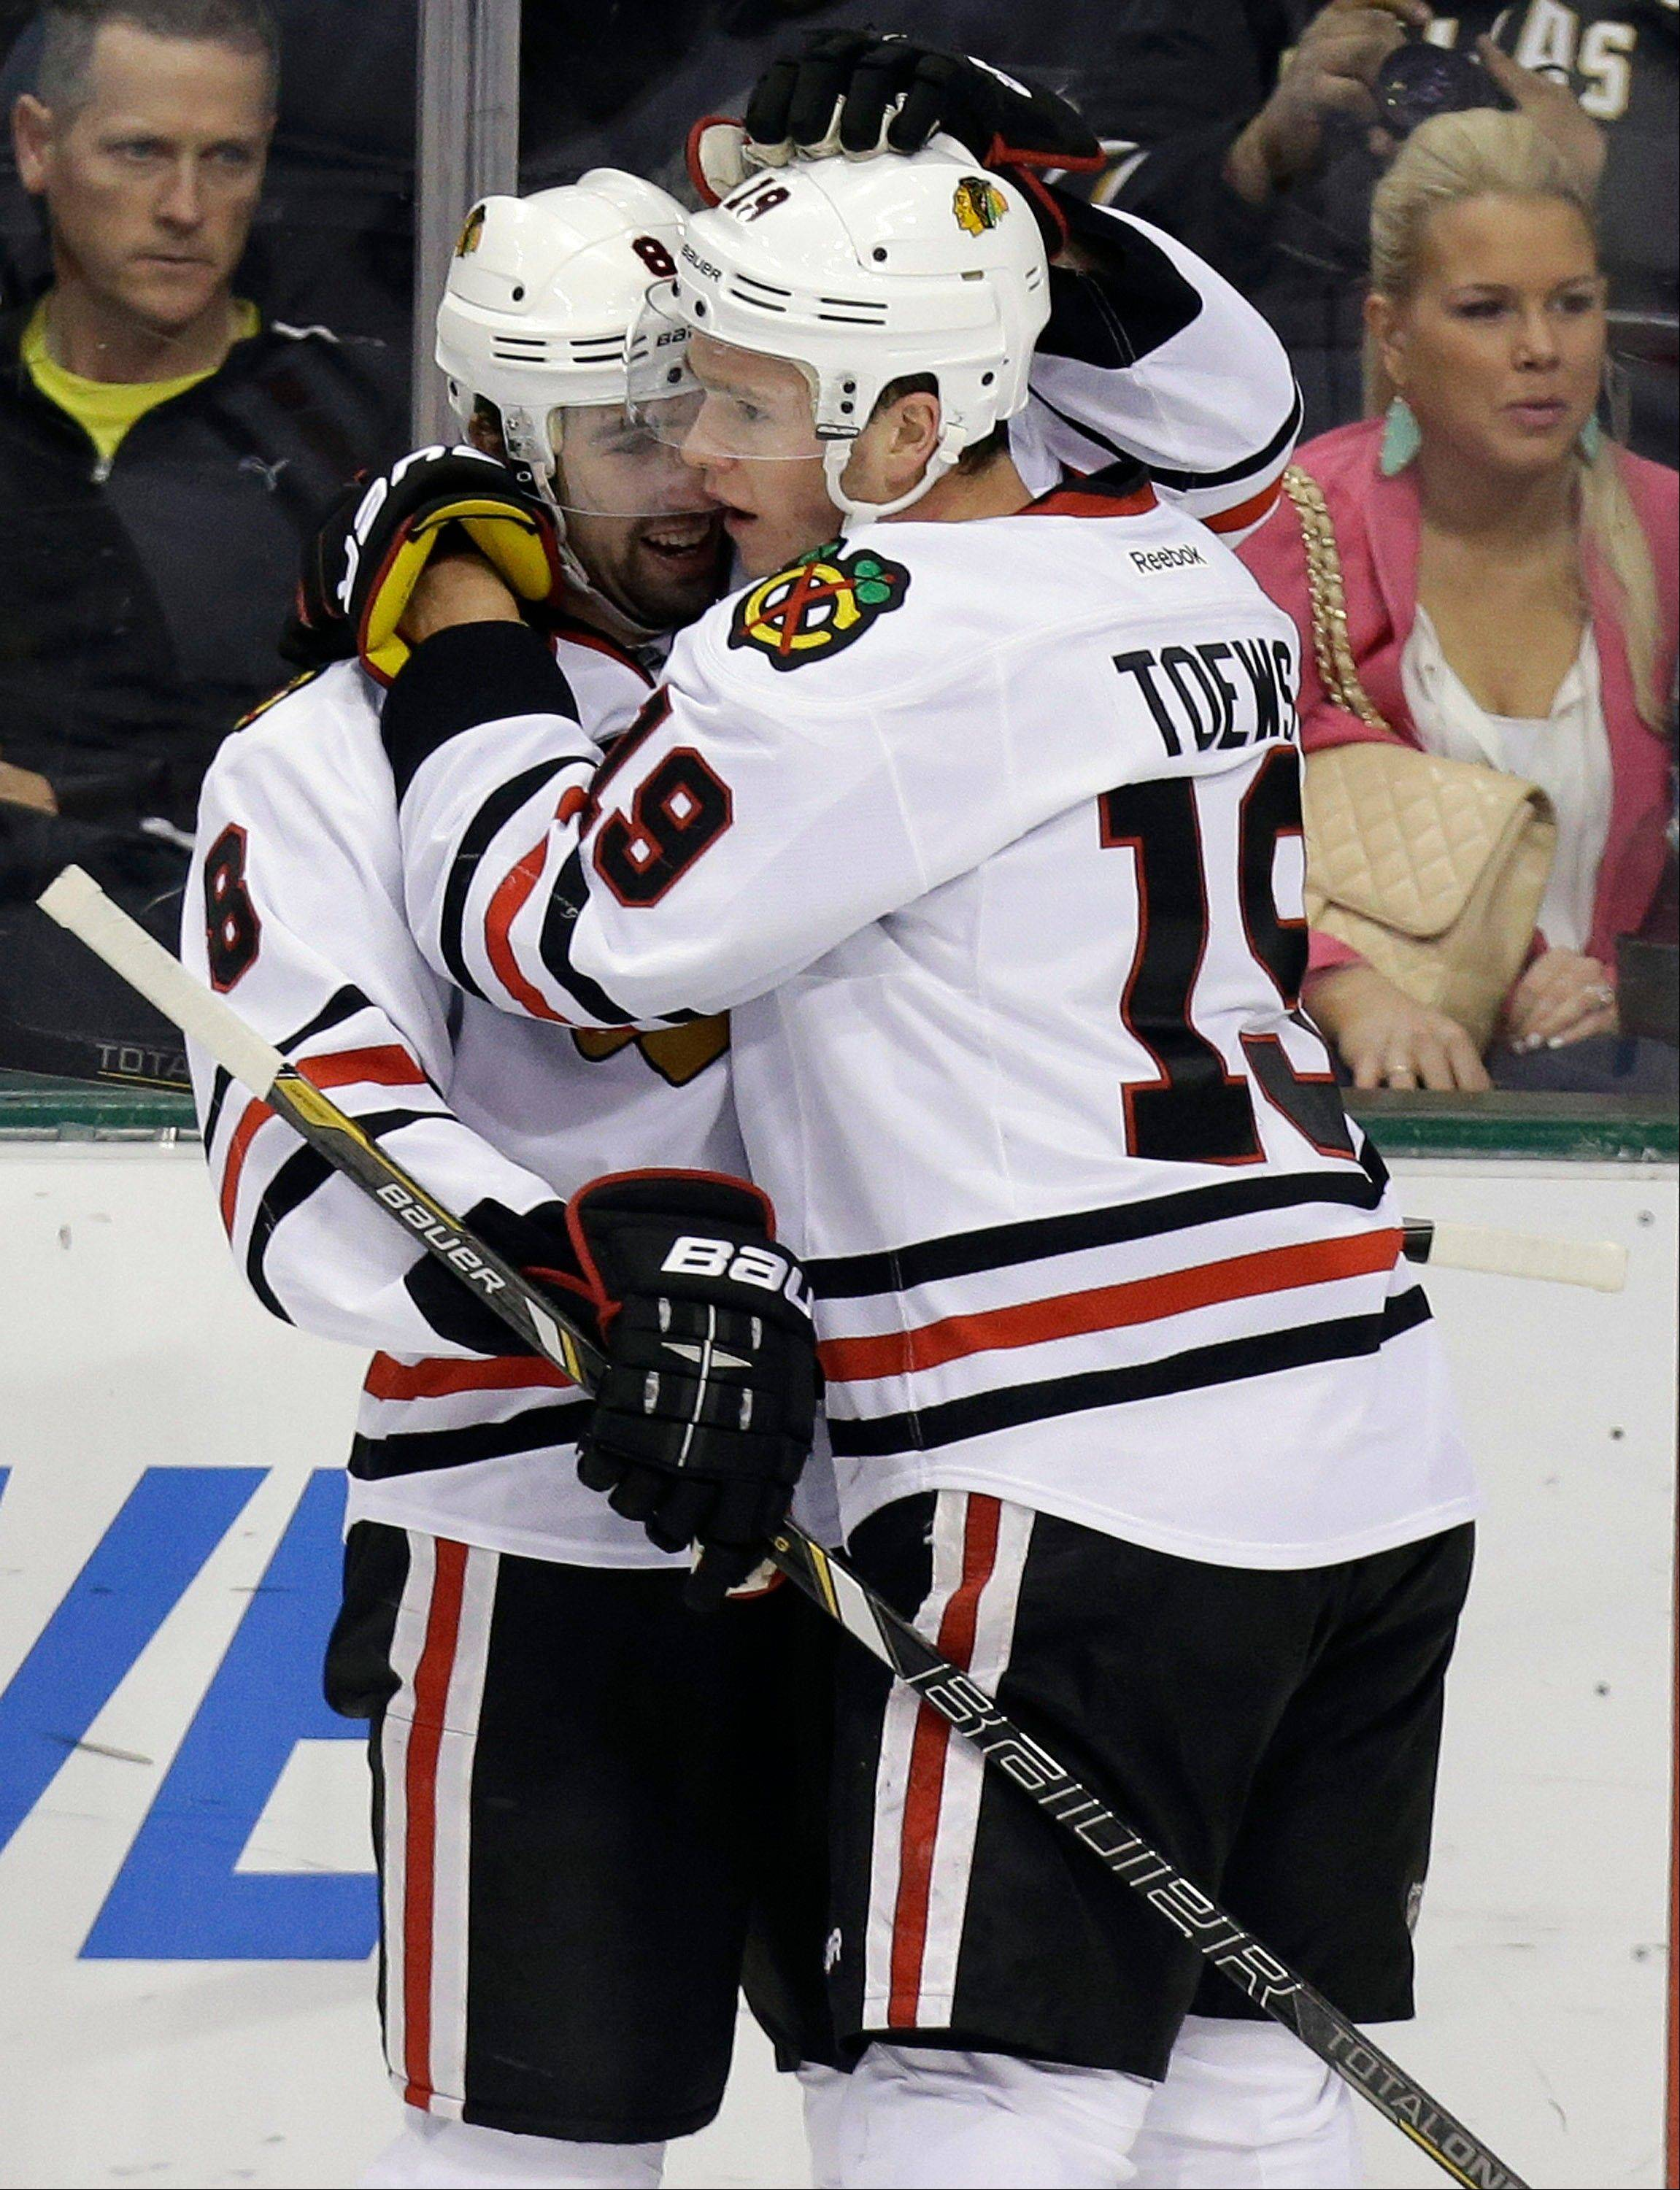 Chicago Blackhawks center Jonathan Toews (19) celebrates his goal with teammate Nick Leddy (8) during the Hawks' win against the Stars Saturday night in Dallas.